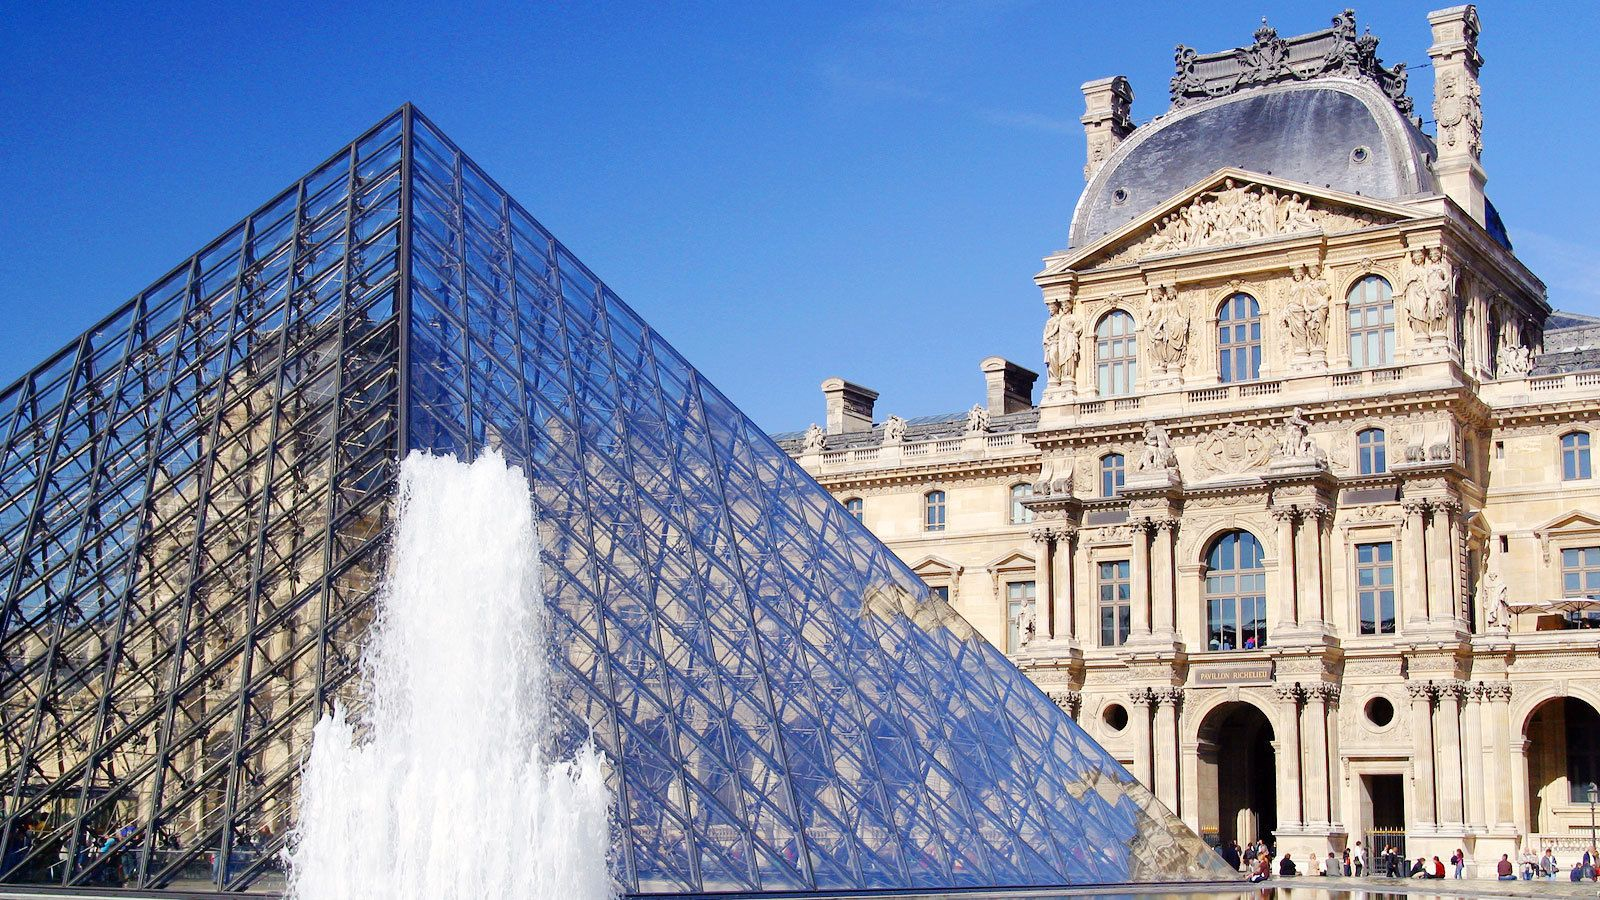 Paris Day Trip by Eurostar with Seine River Cruise & Eiffel Tower Lunch